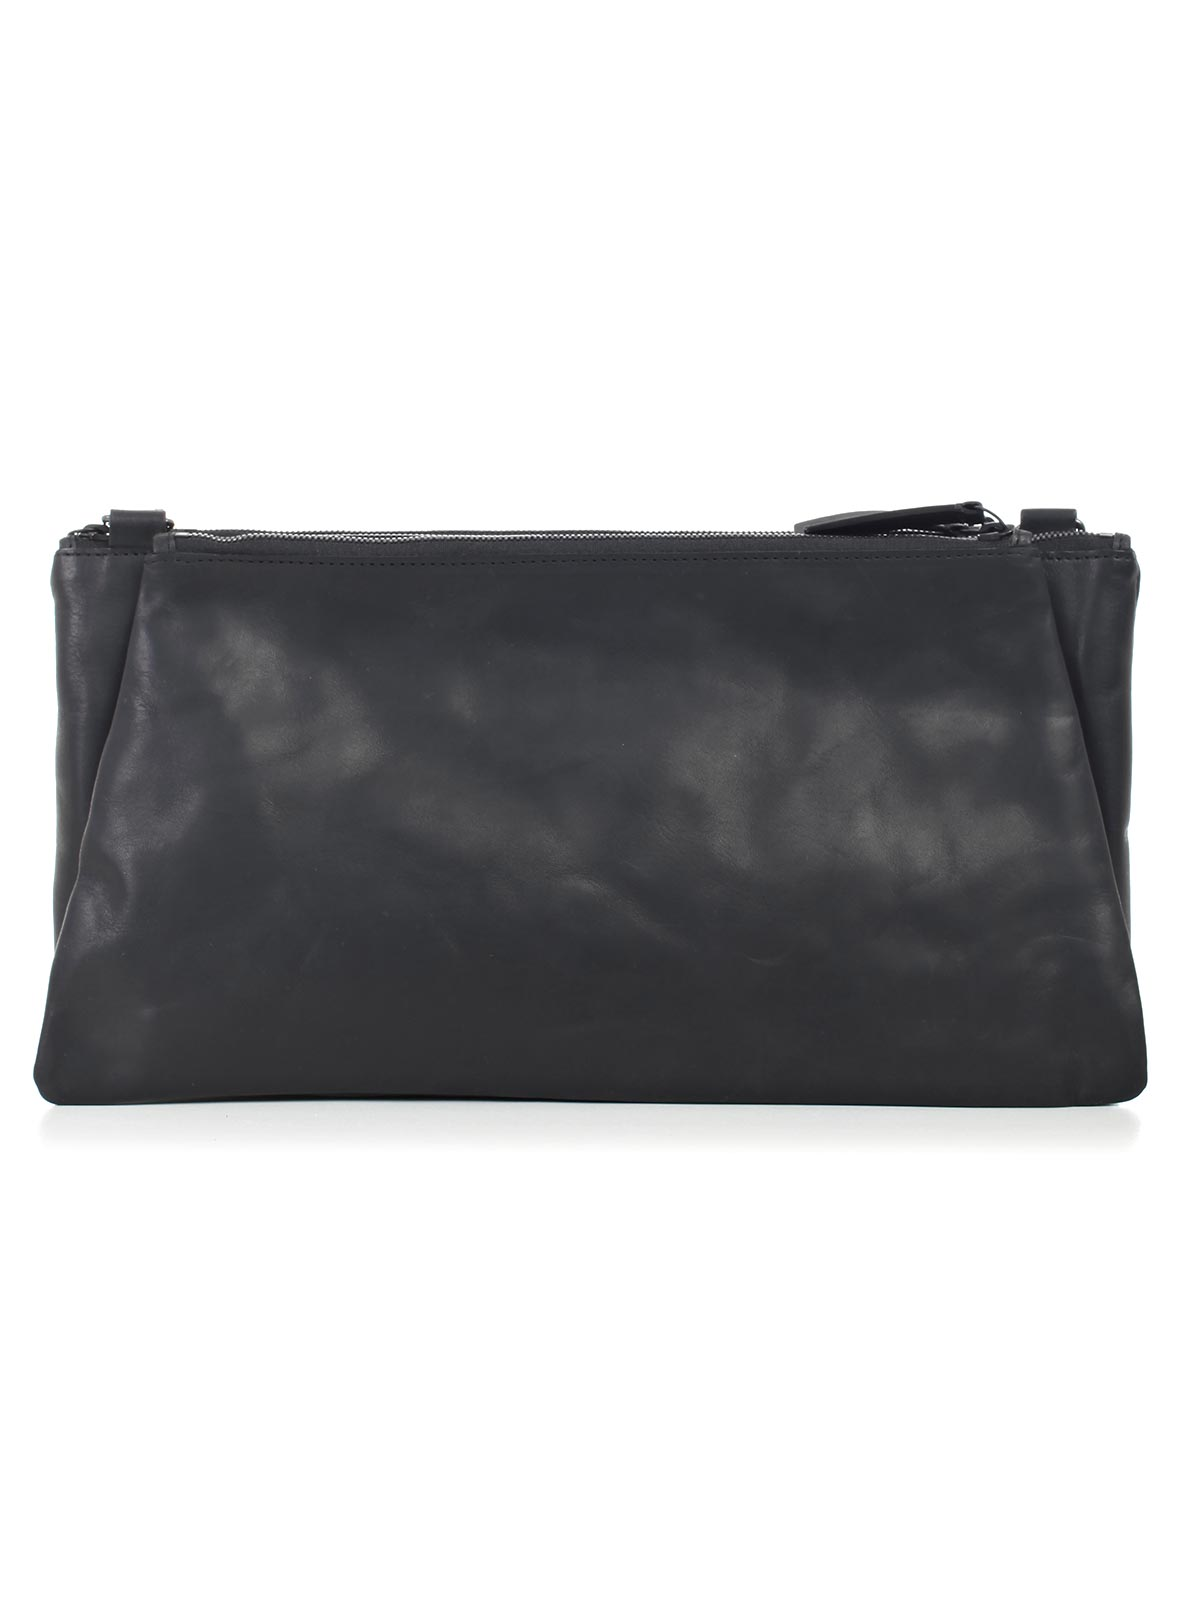 Picture of ANN DEMEULEMESTER Shoulder bag